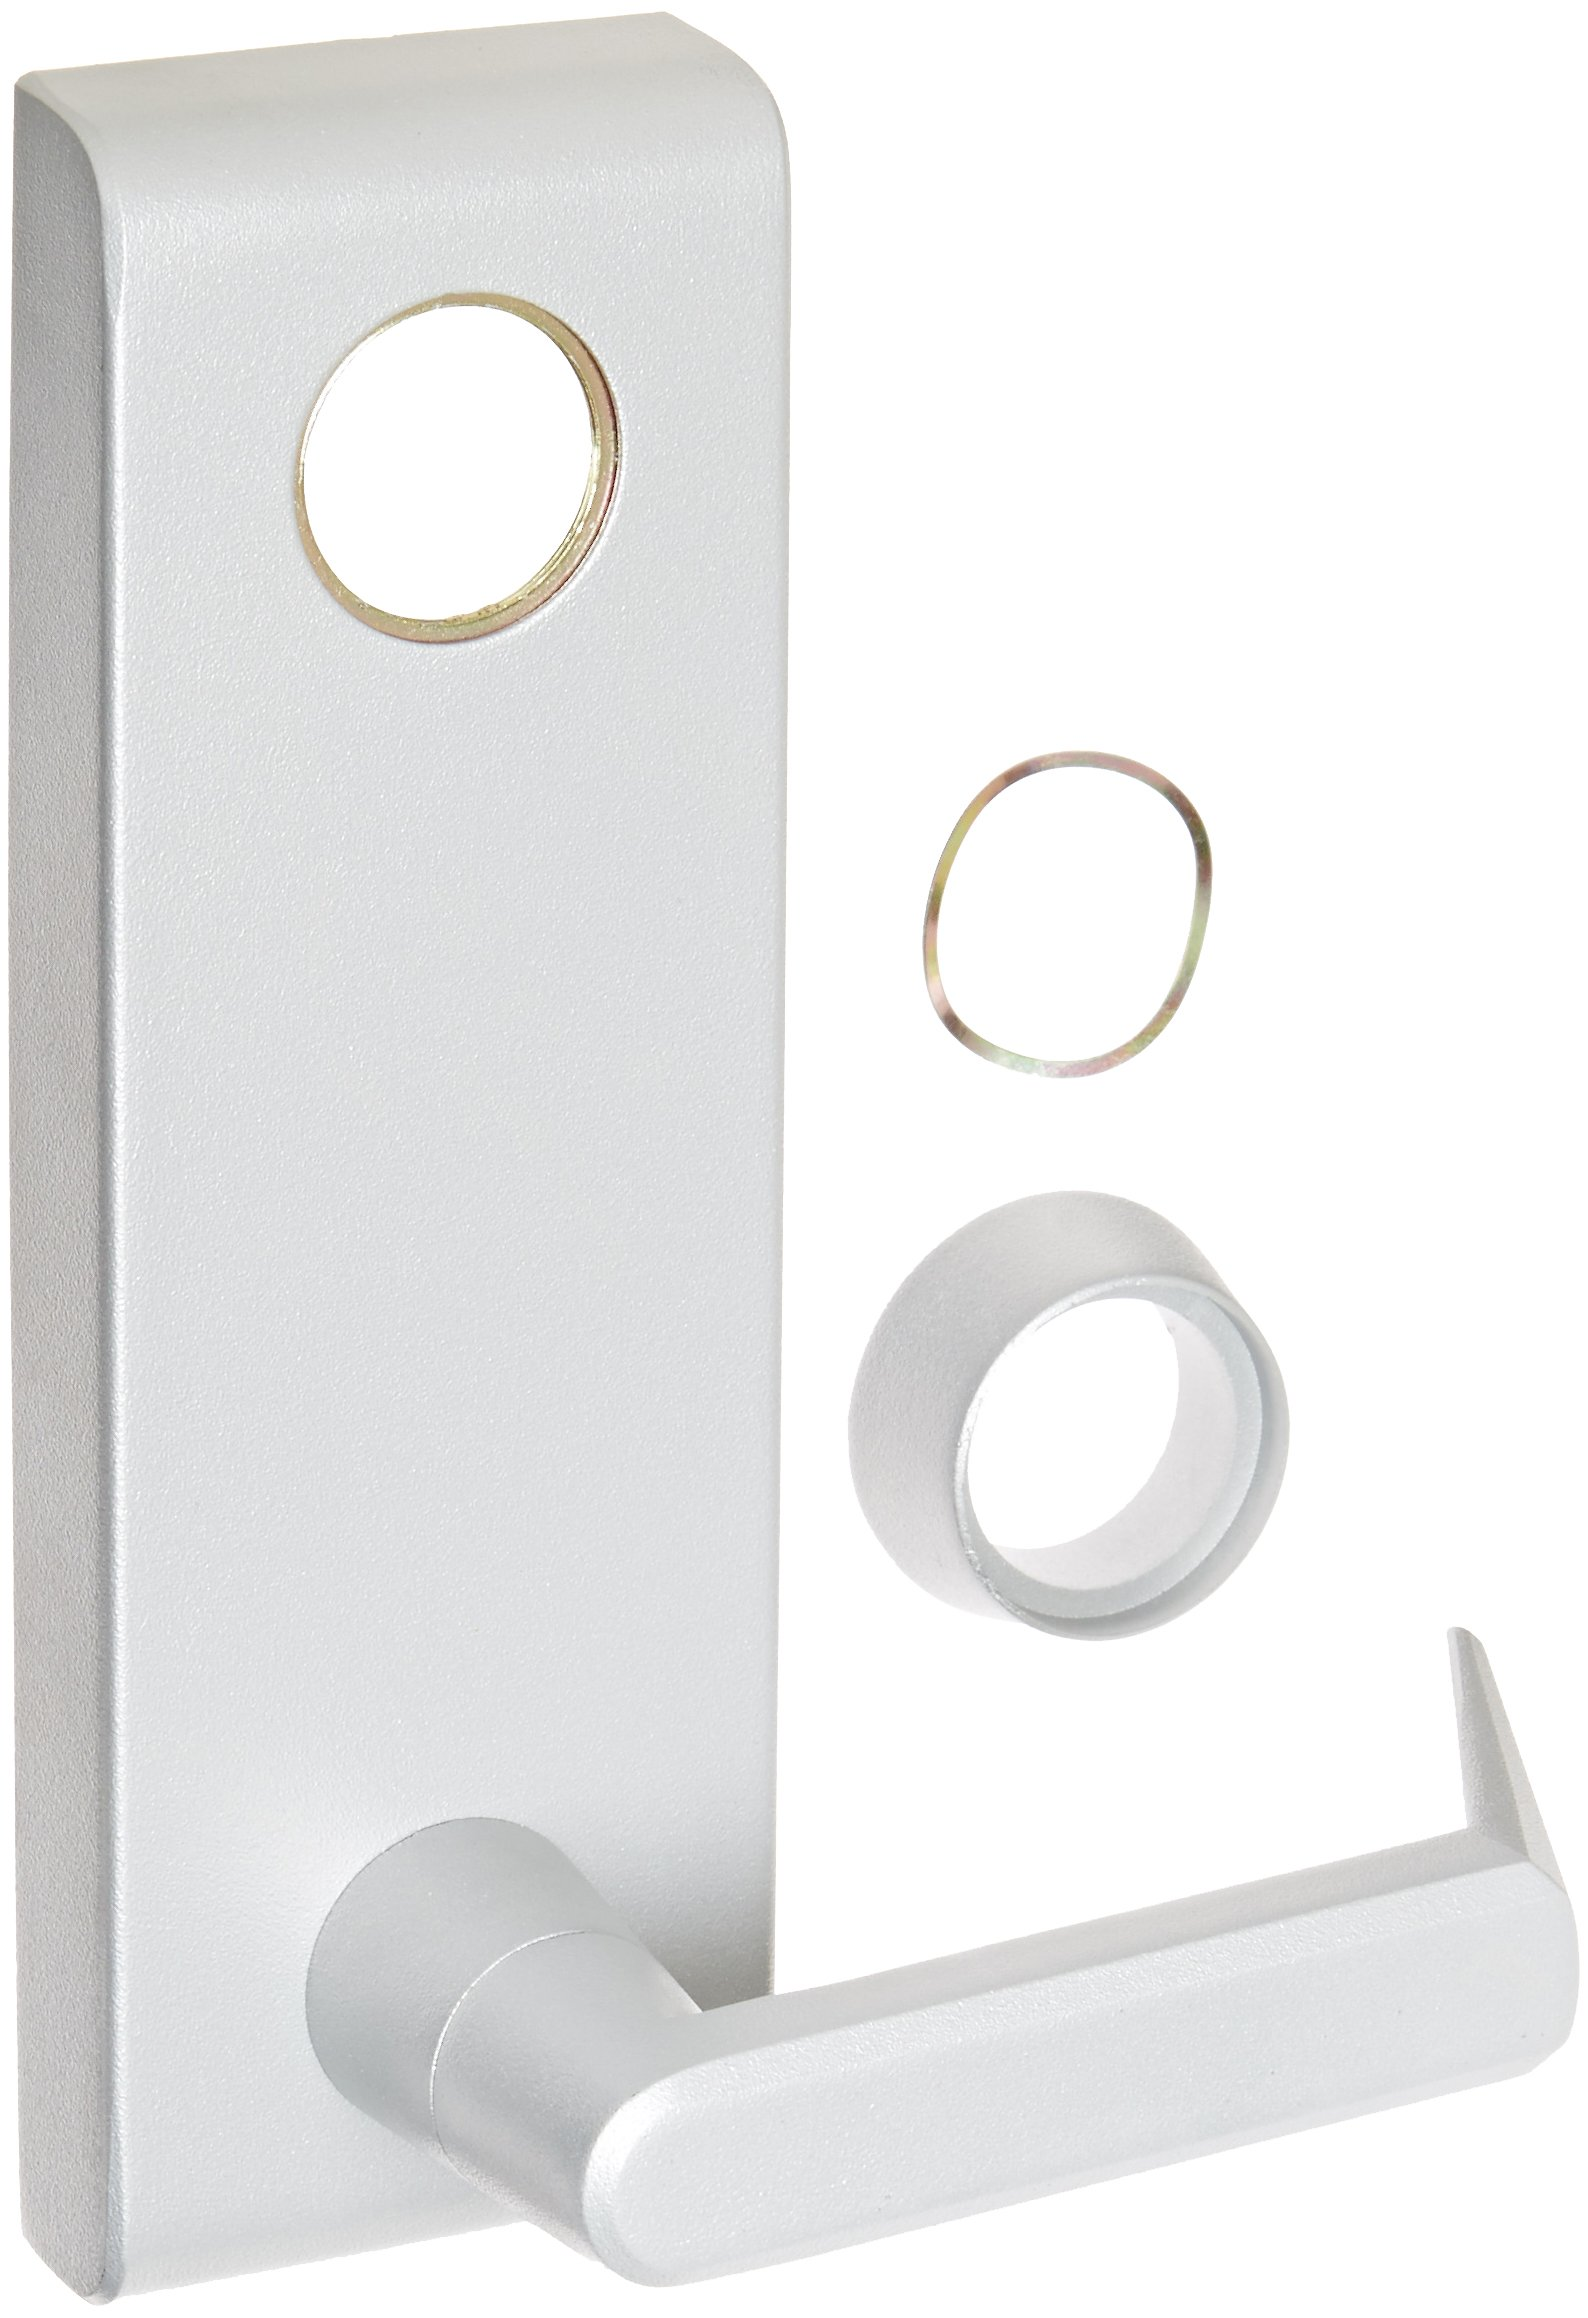 Stanley Commercial Hardware Stainless Steel Keyed Escutcheon Lever Standard Duty Exit Trim from the QET300 Collection, Sierra Style, Mortise Cylinder Type, Painted Aluminum Finish